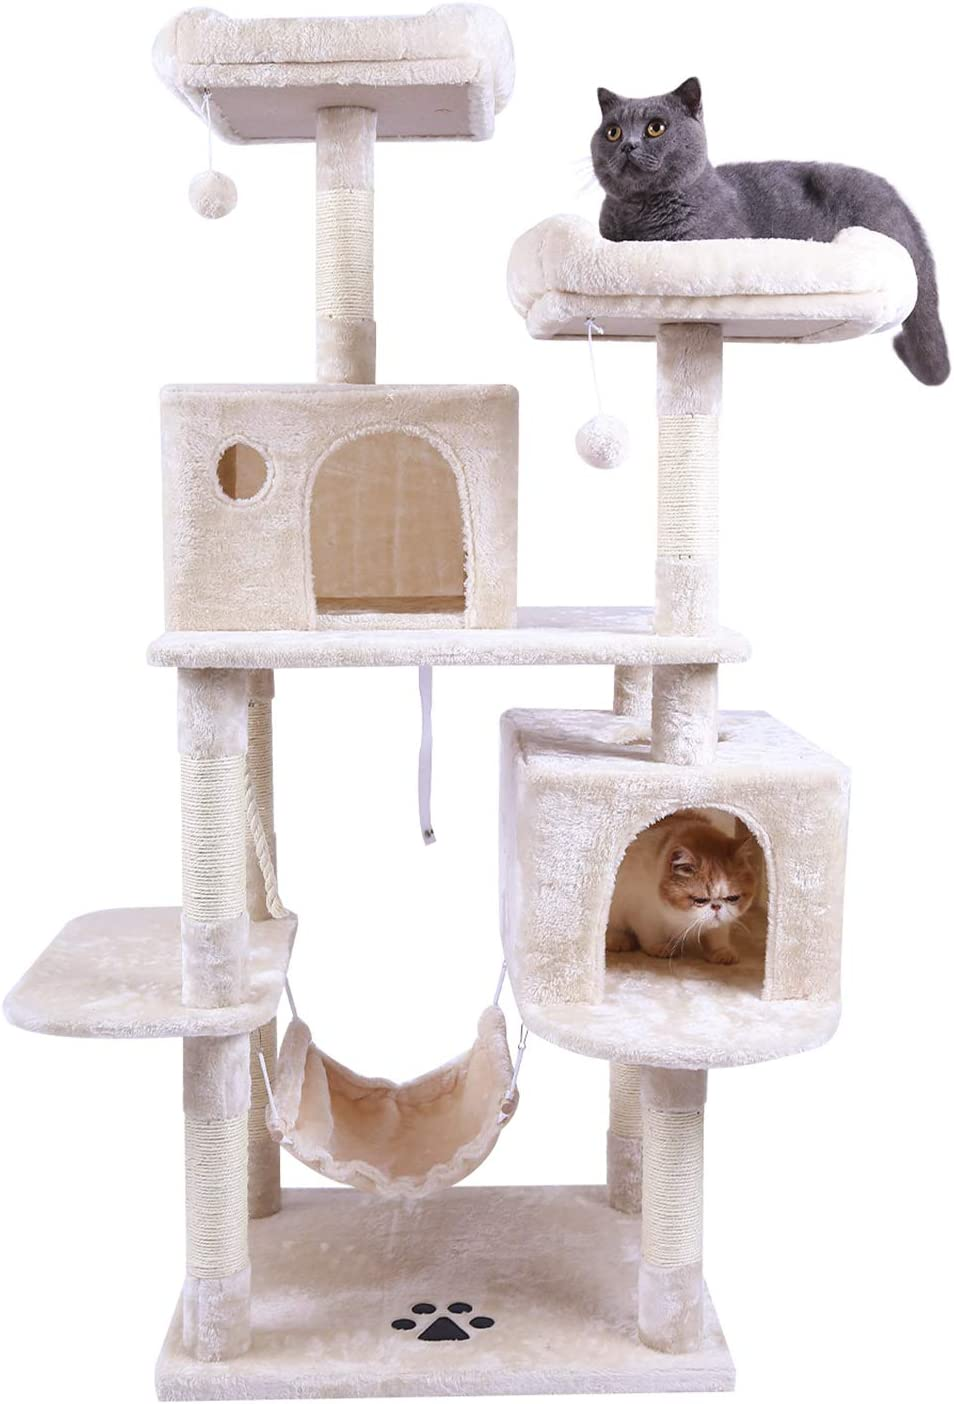 Hey-bro Extra Large Multi-Level Cat Tree Condo Furniture with Sisal-Covered Scratching Posts, 2 Bigger Plush Condos, Perch Hammock for Kittens, Cats and Pets